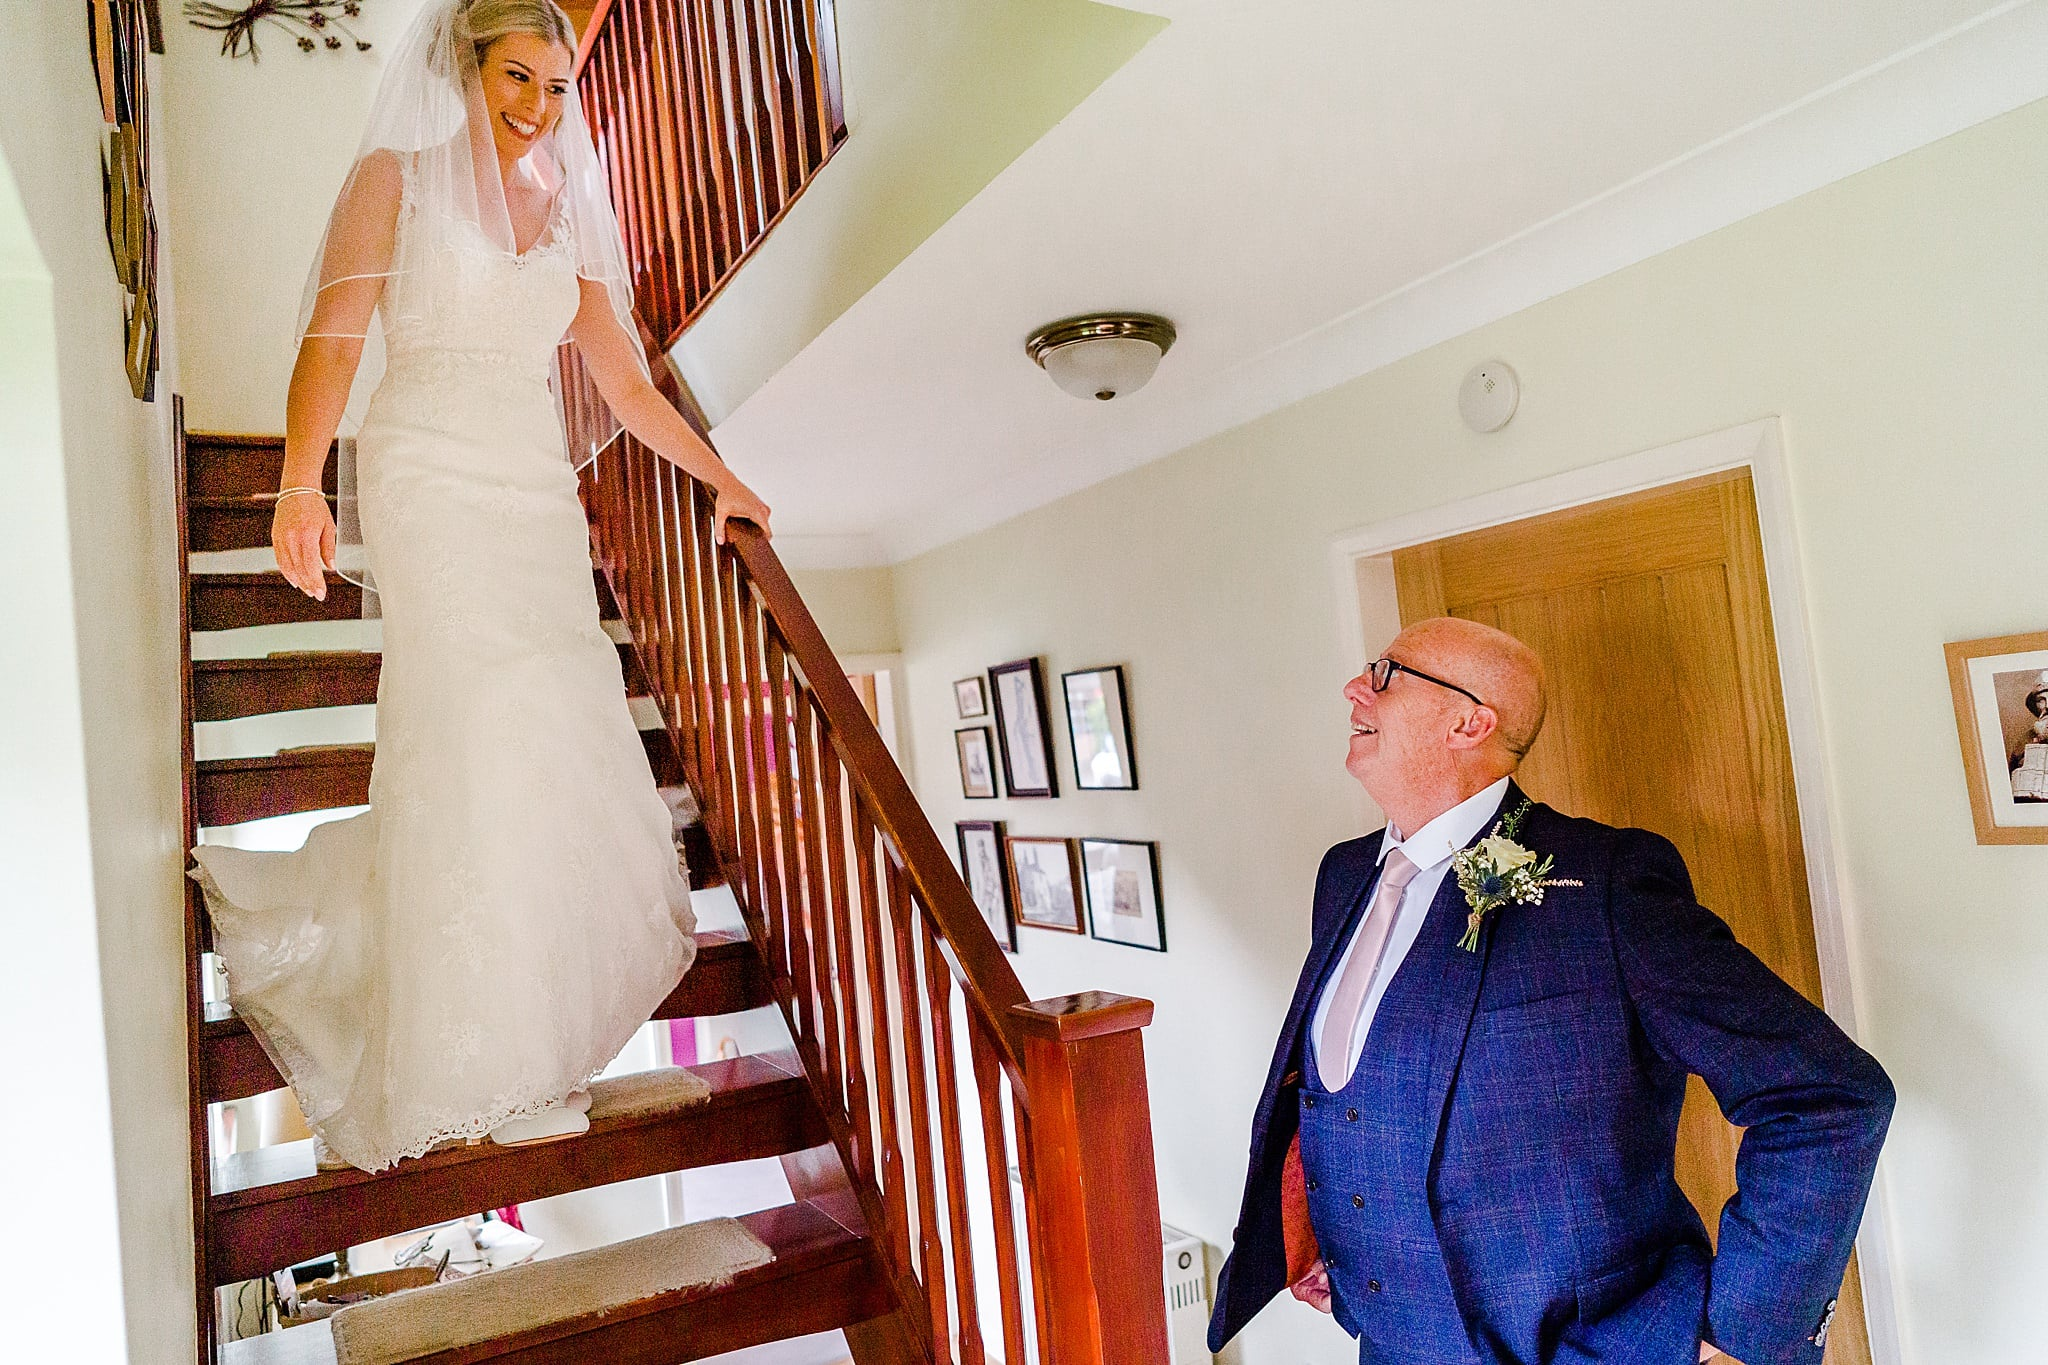 Bride's father watches as his daughter walks down the stairs in her wedding dress